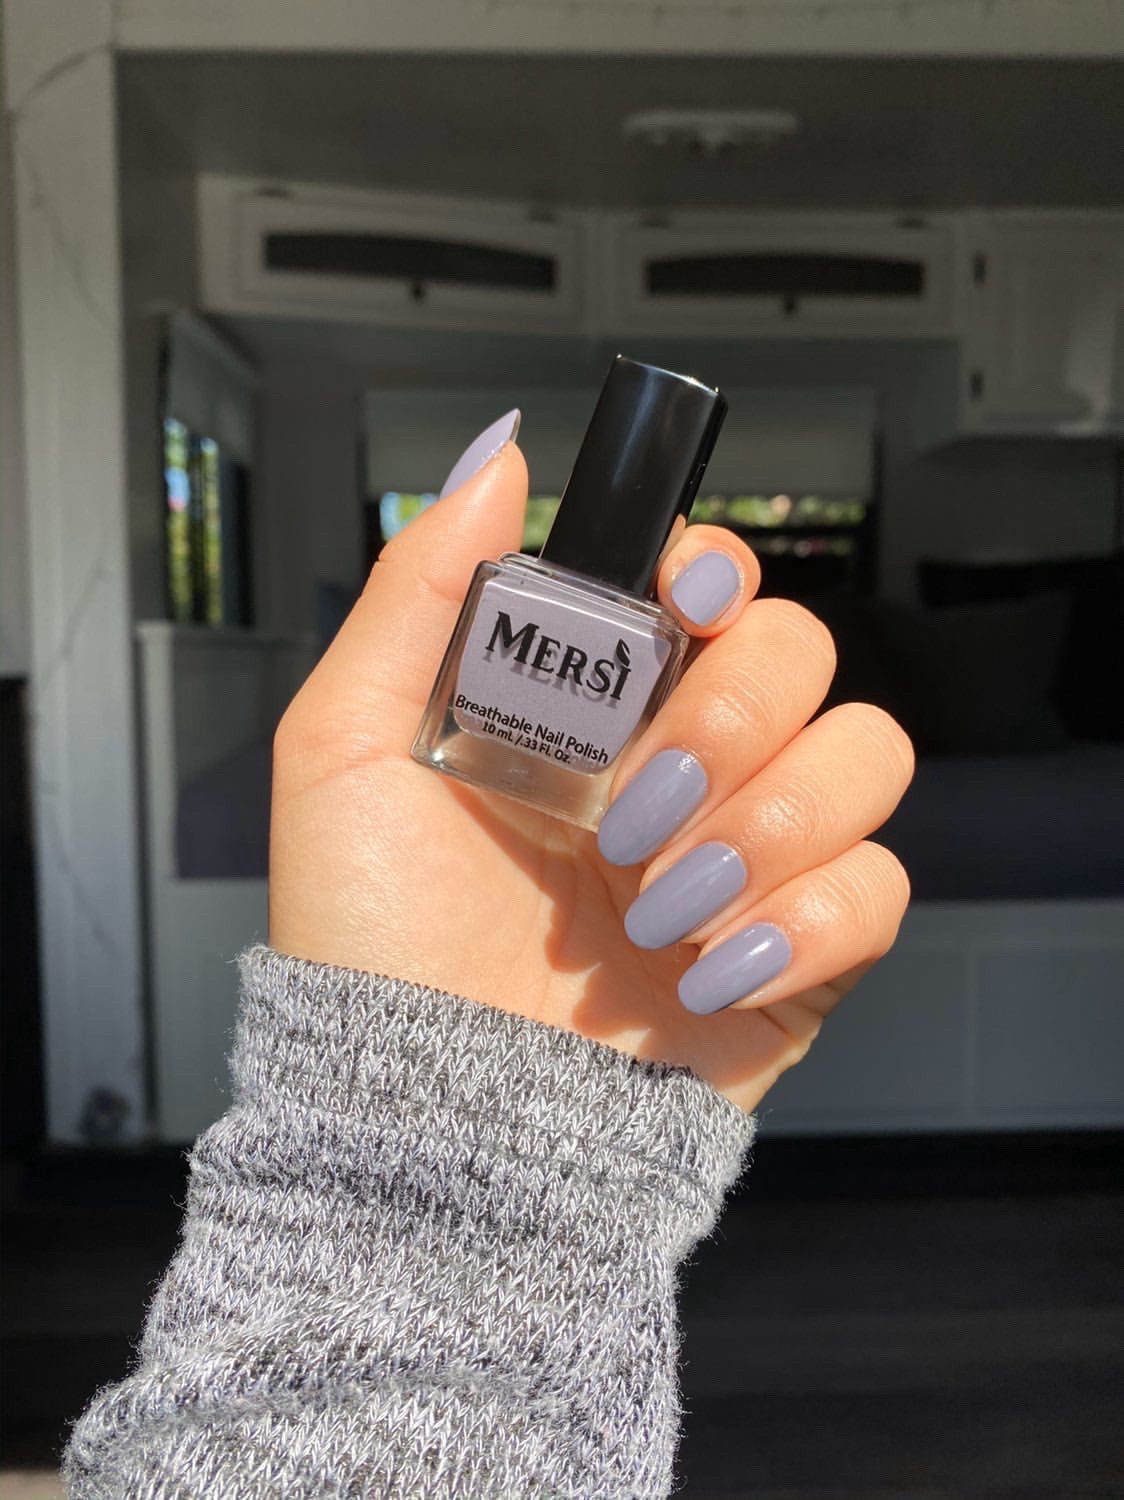 Northern Lights Breathable Nail Polish by Mersi Cosmetics